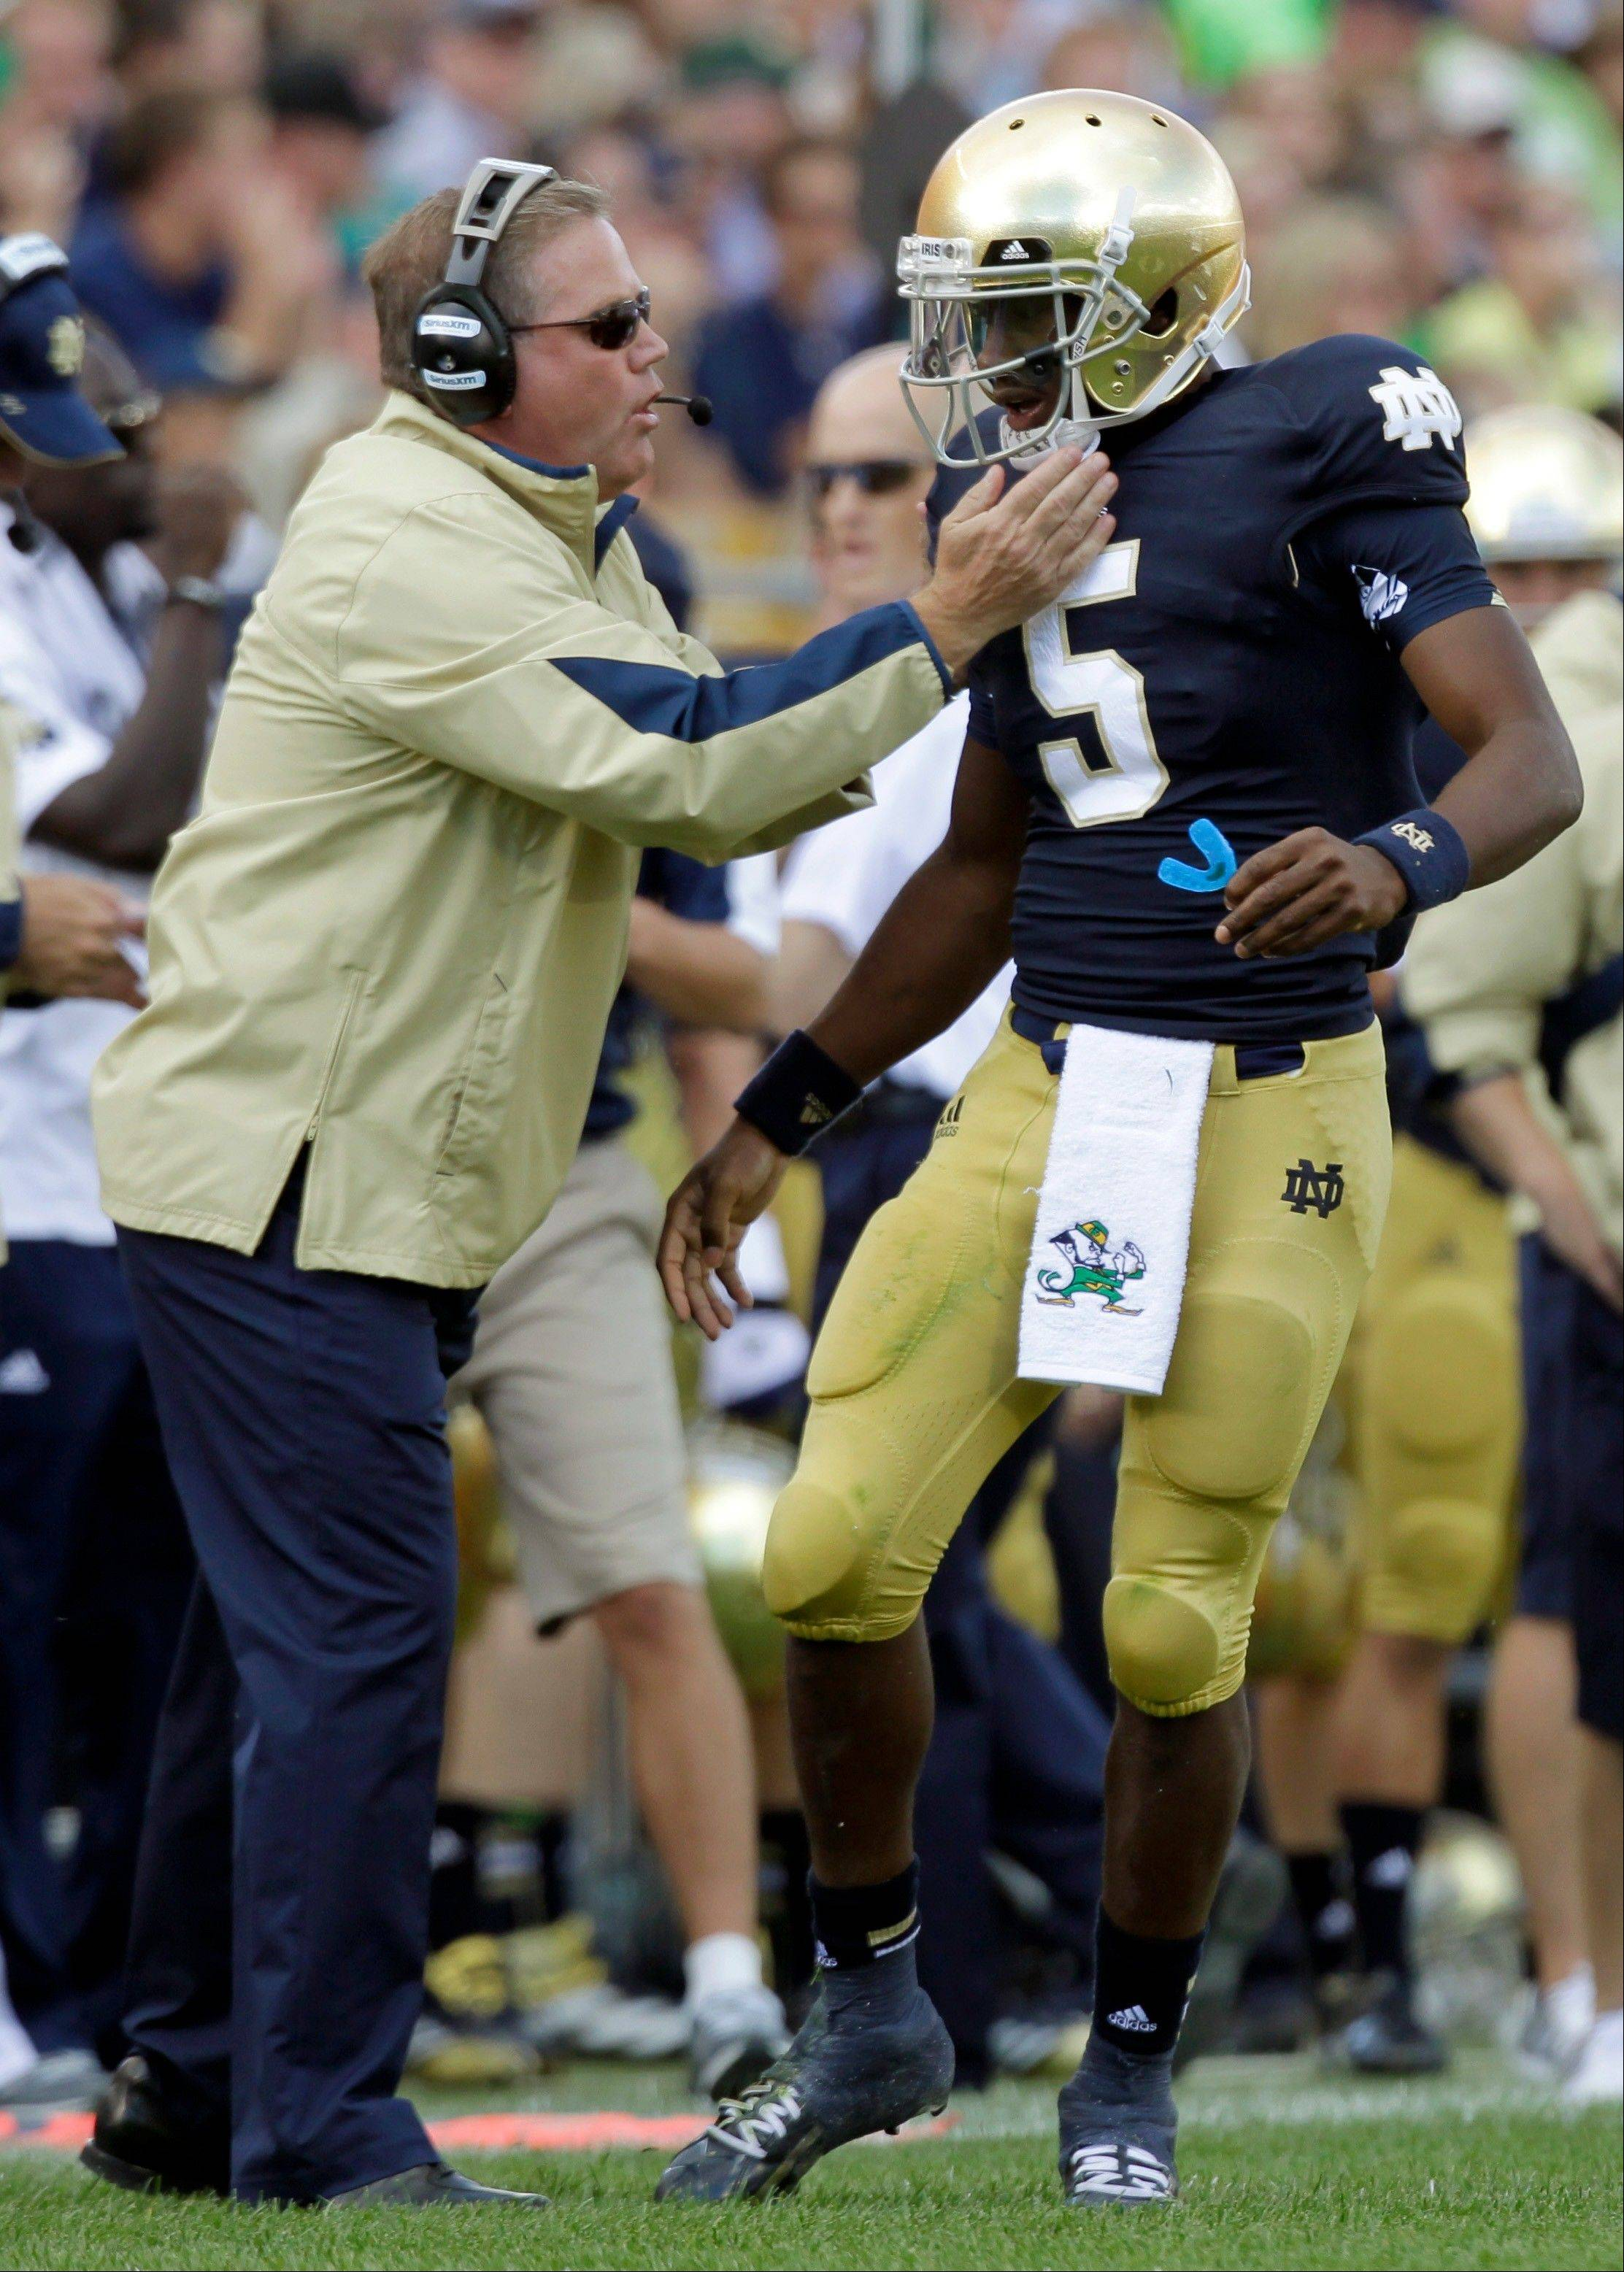 Coach Brian Kelly saw something special enough in Everett Golson to hand the reins of the Notre Dame offense to the redshirt freshman. All Golson has done is lead the Irish to a 12-0 regular season and a shot at the BCS national championship tonight against Alabama.